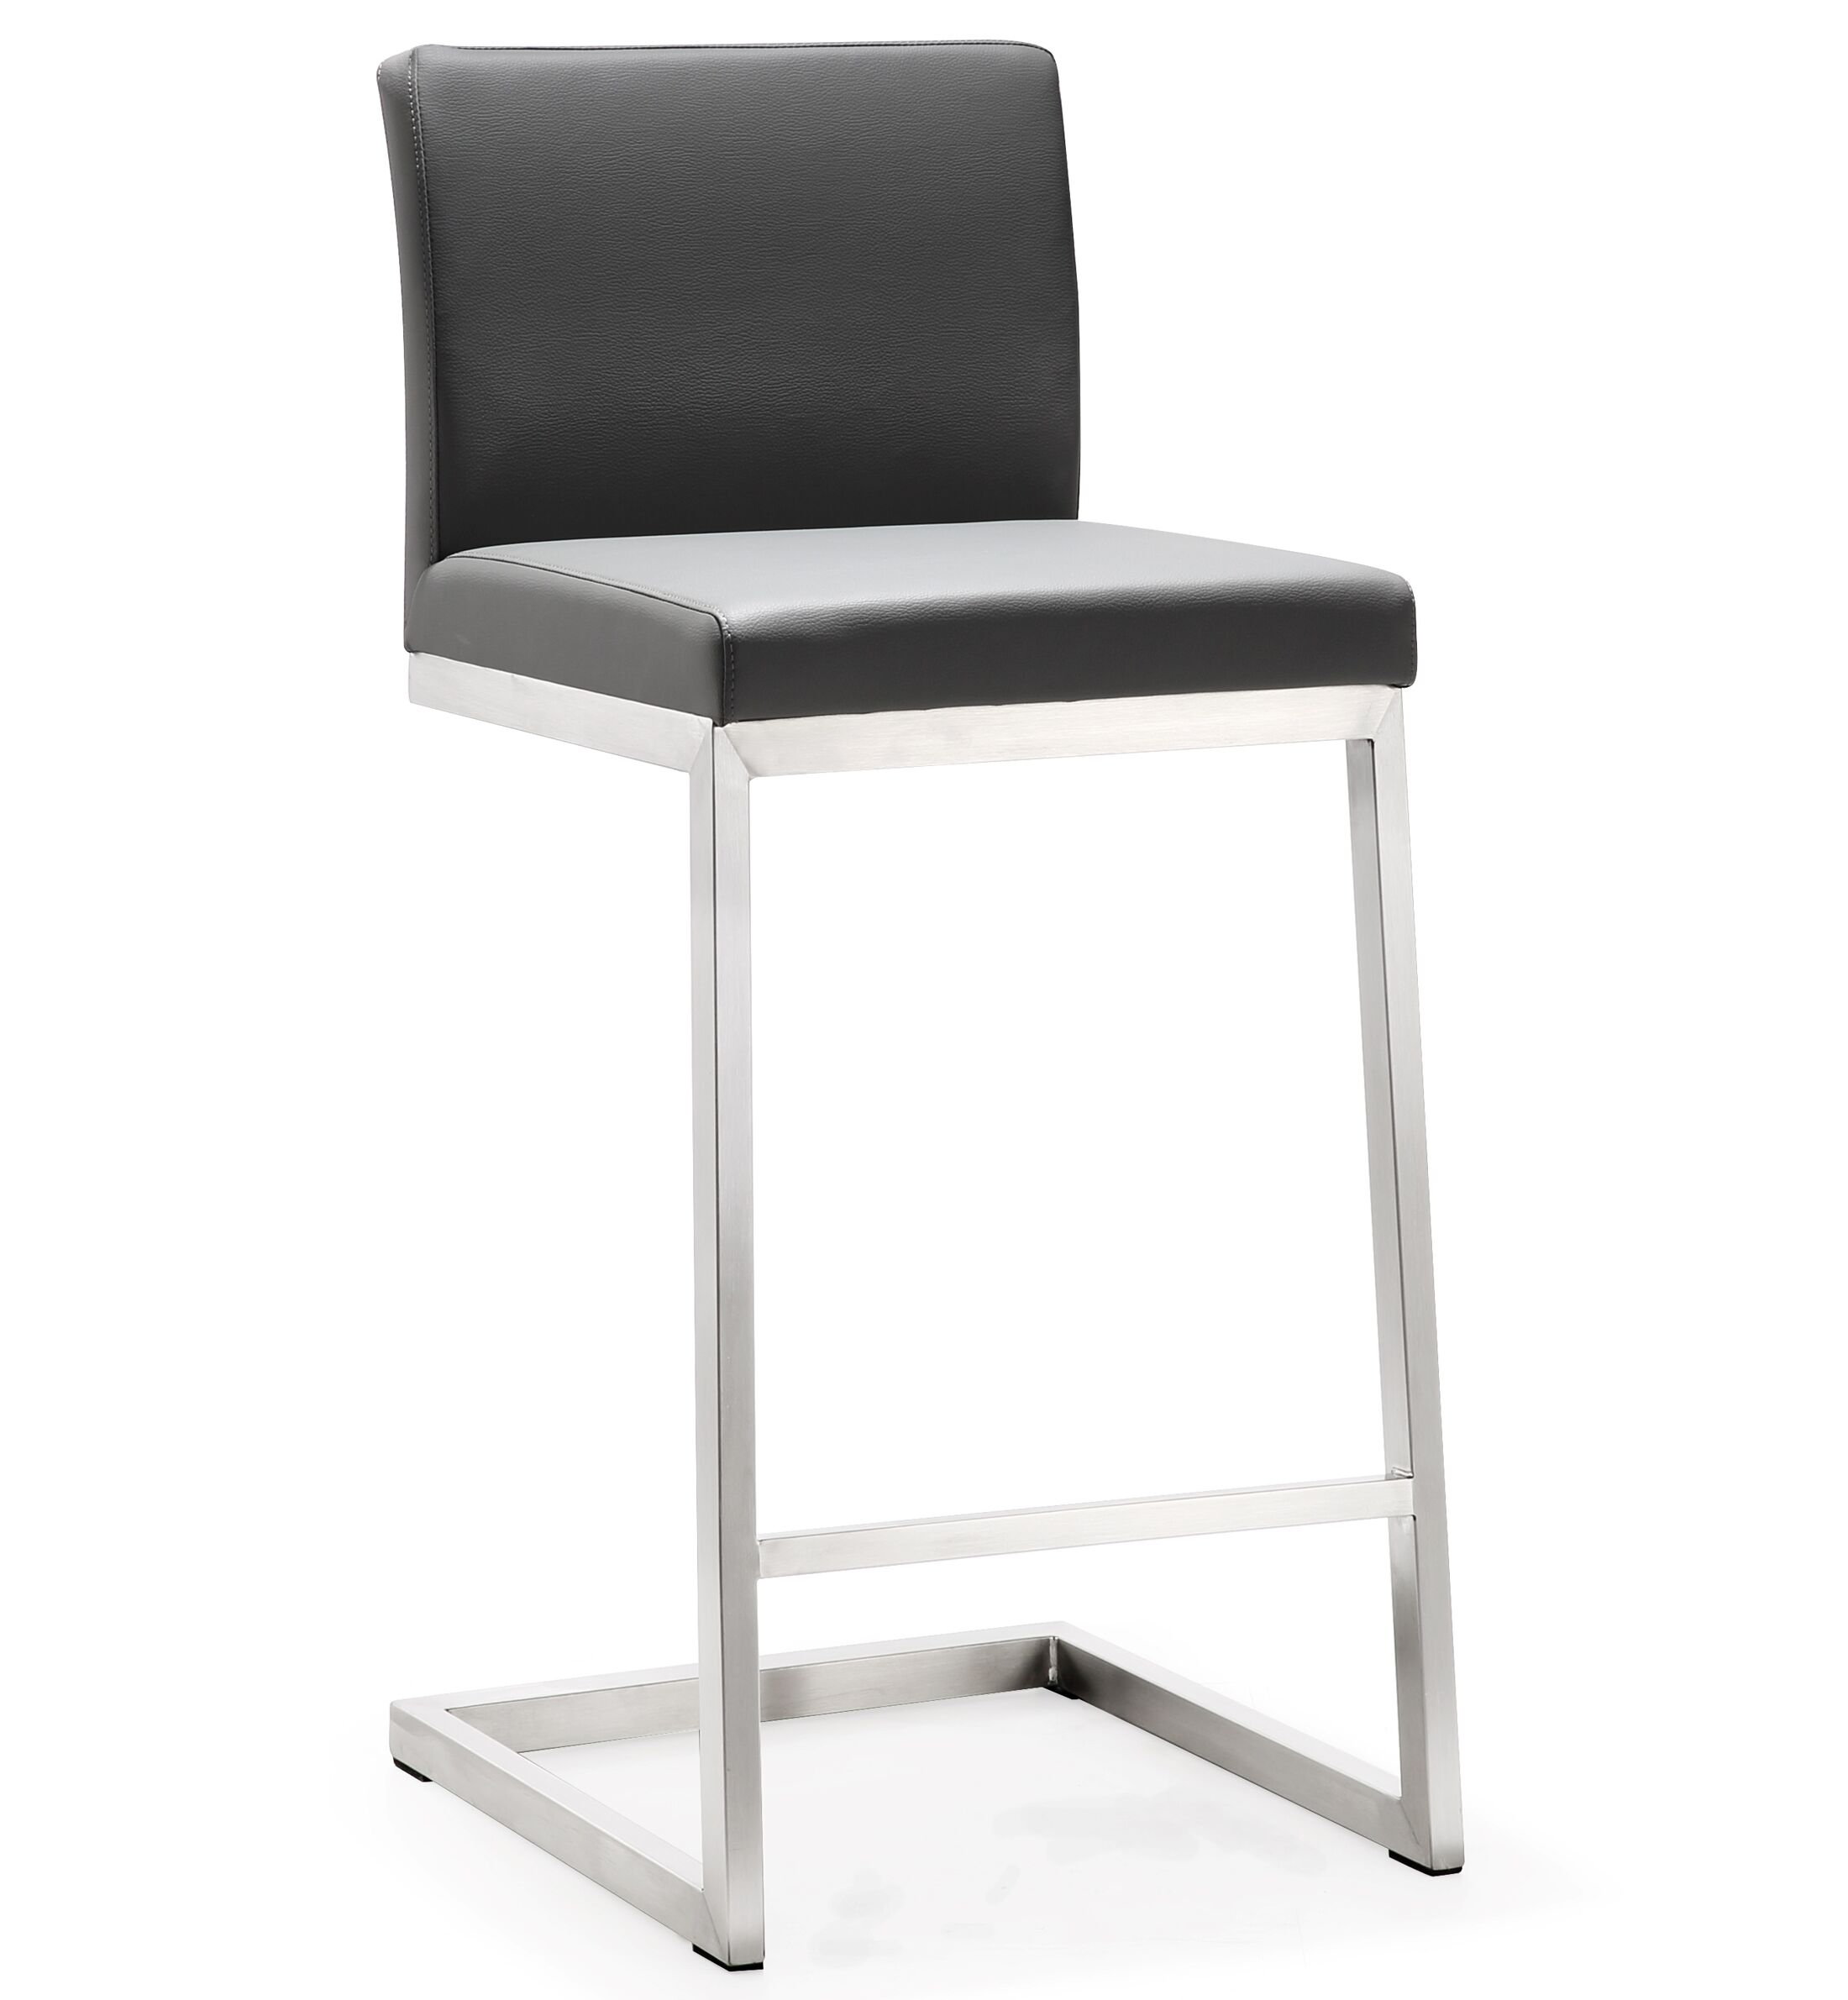 Fantastic Parma Grey Stainless Steel Counter Stool Set Of 2 By Tov Furniture Caraccident5 Cool Chair Designs And Ideas Caraccident5Info